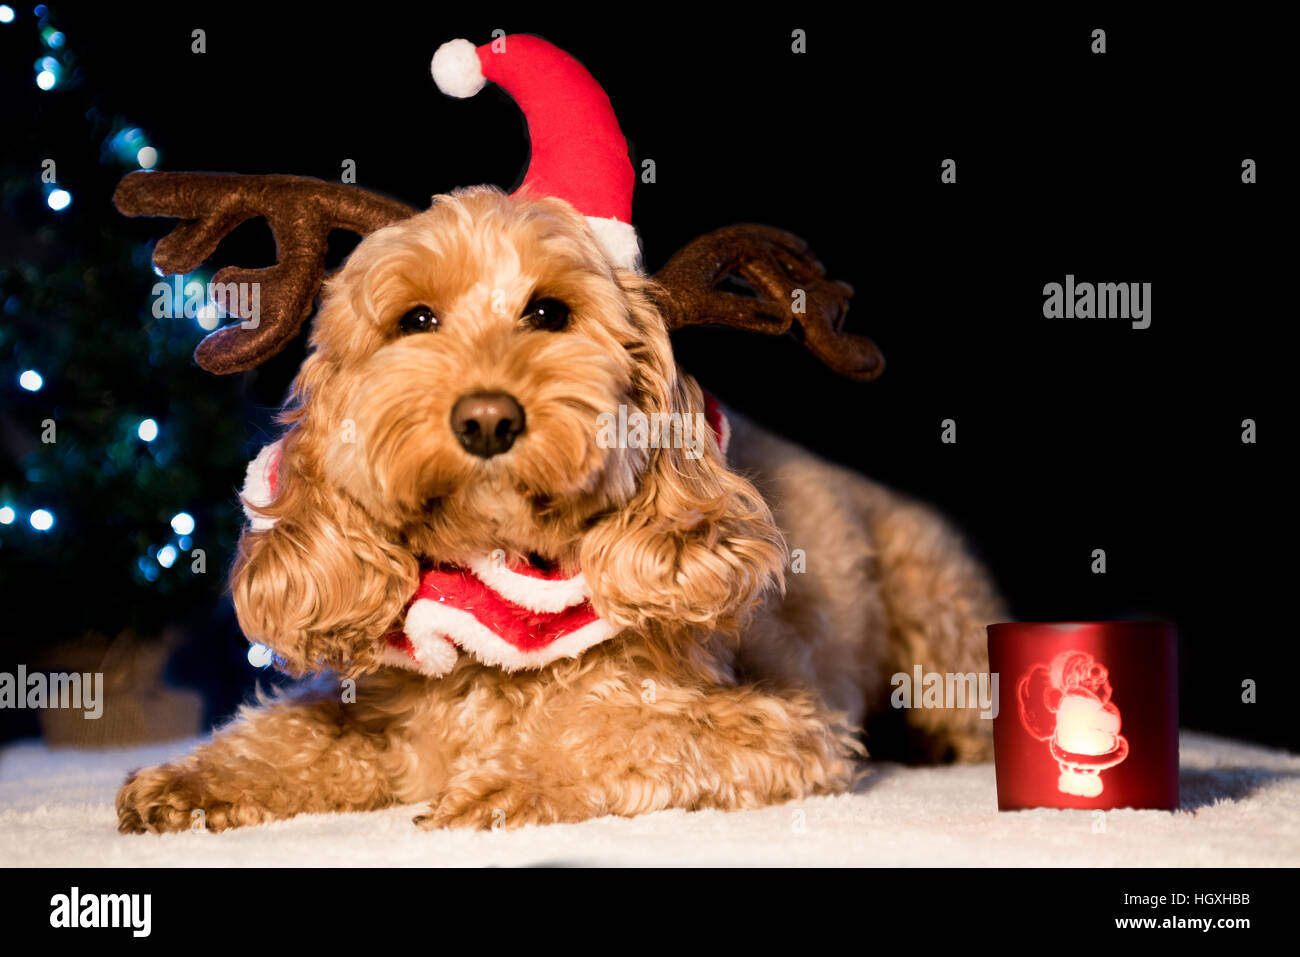 Cute dog wearing Christmas hat and antlers - Stock Image